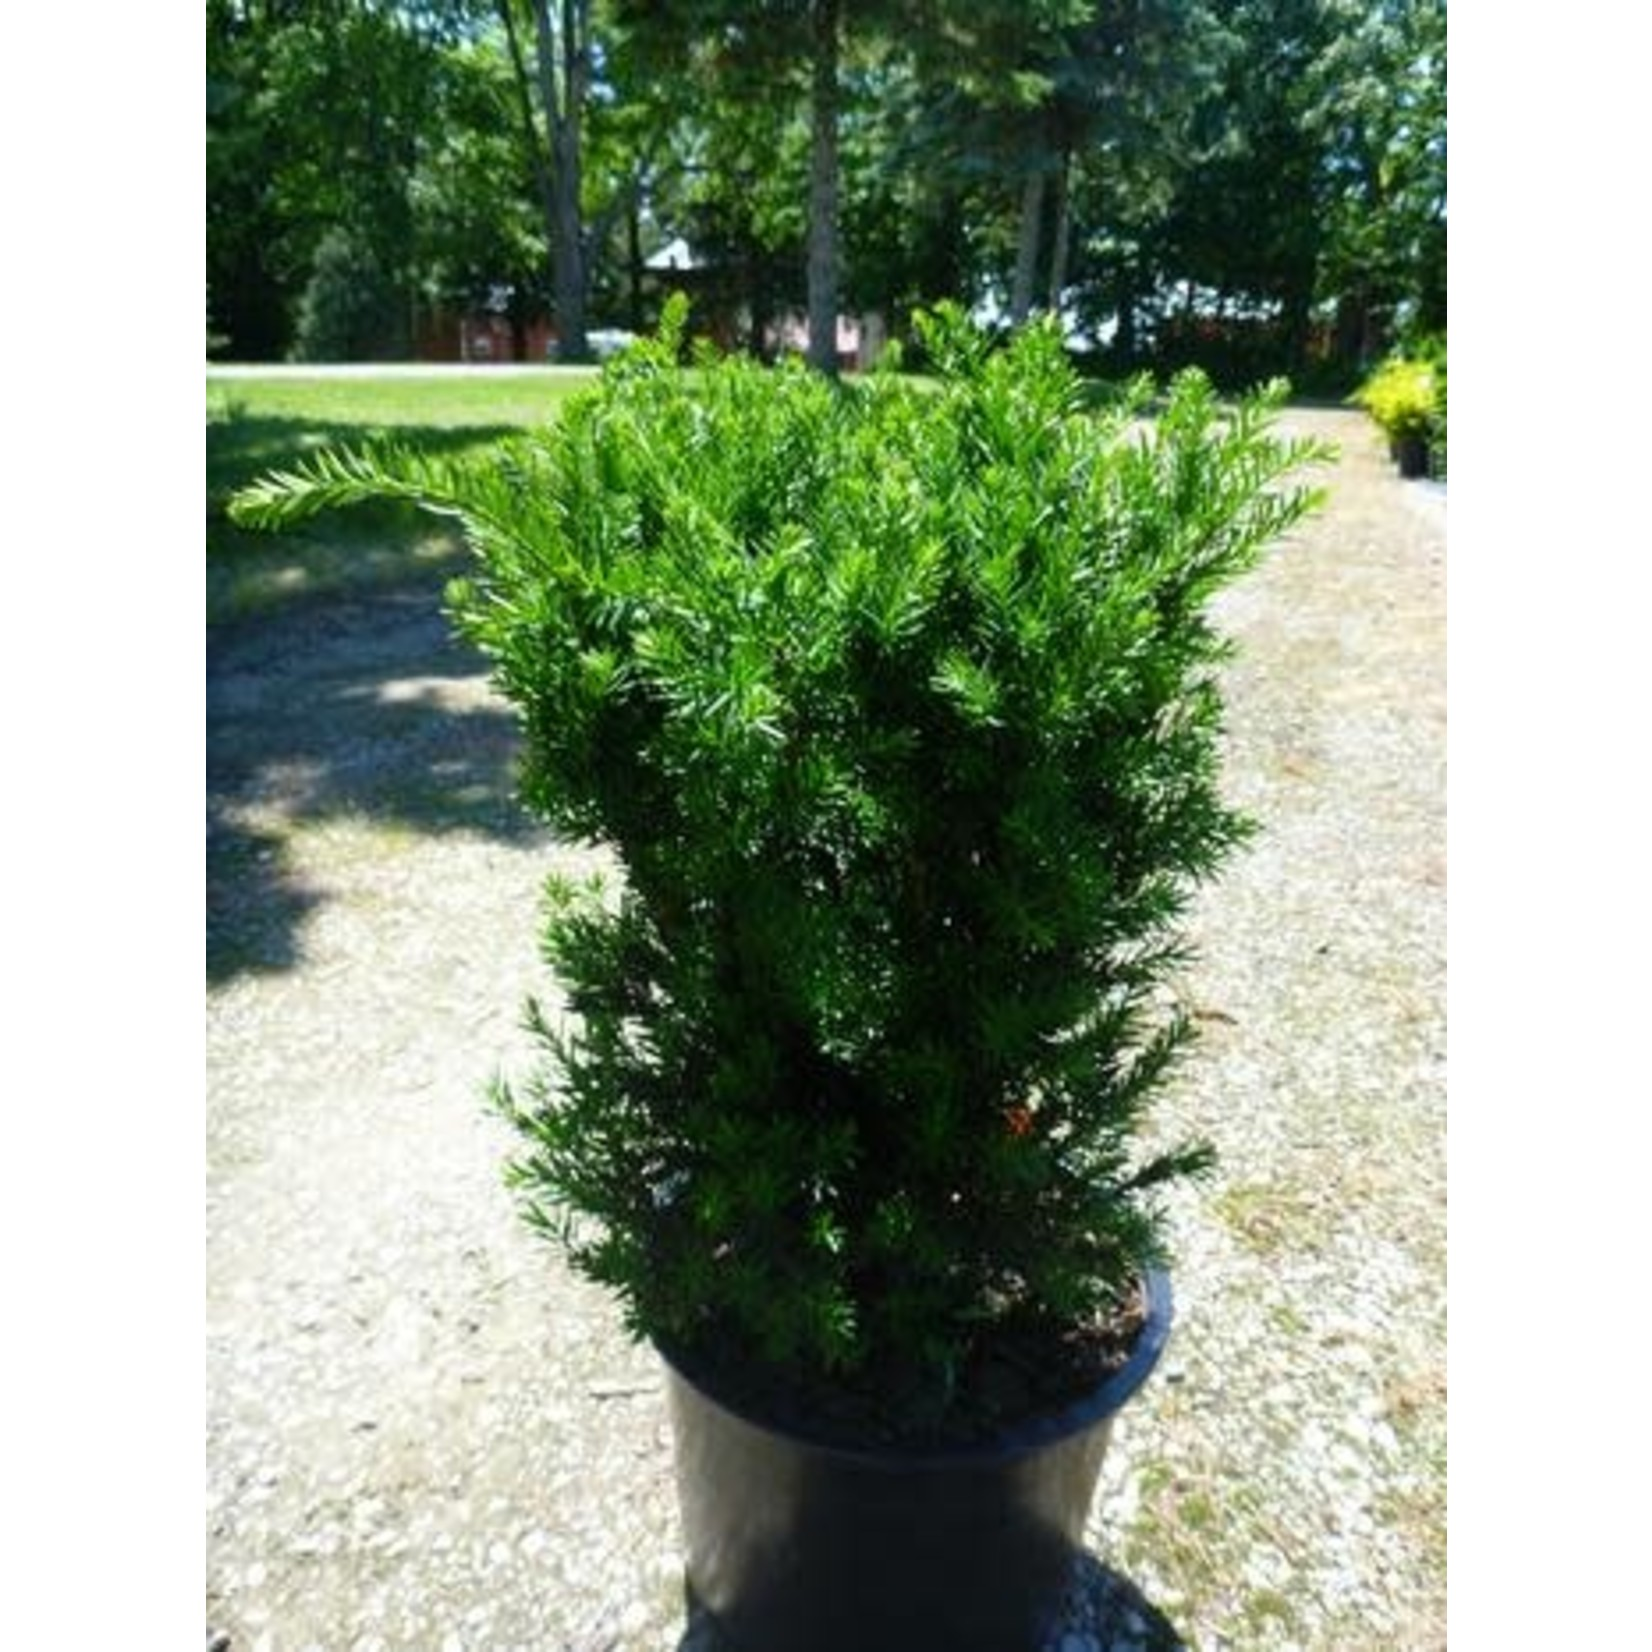 Yew 'Hill's' - 5 gal